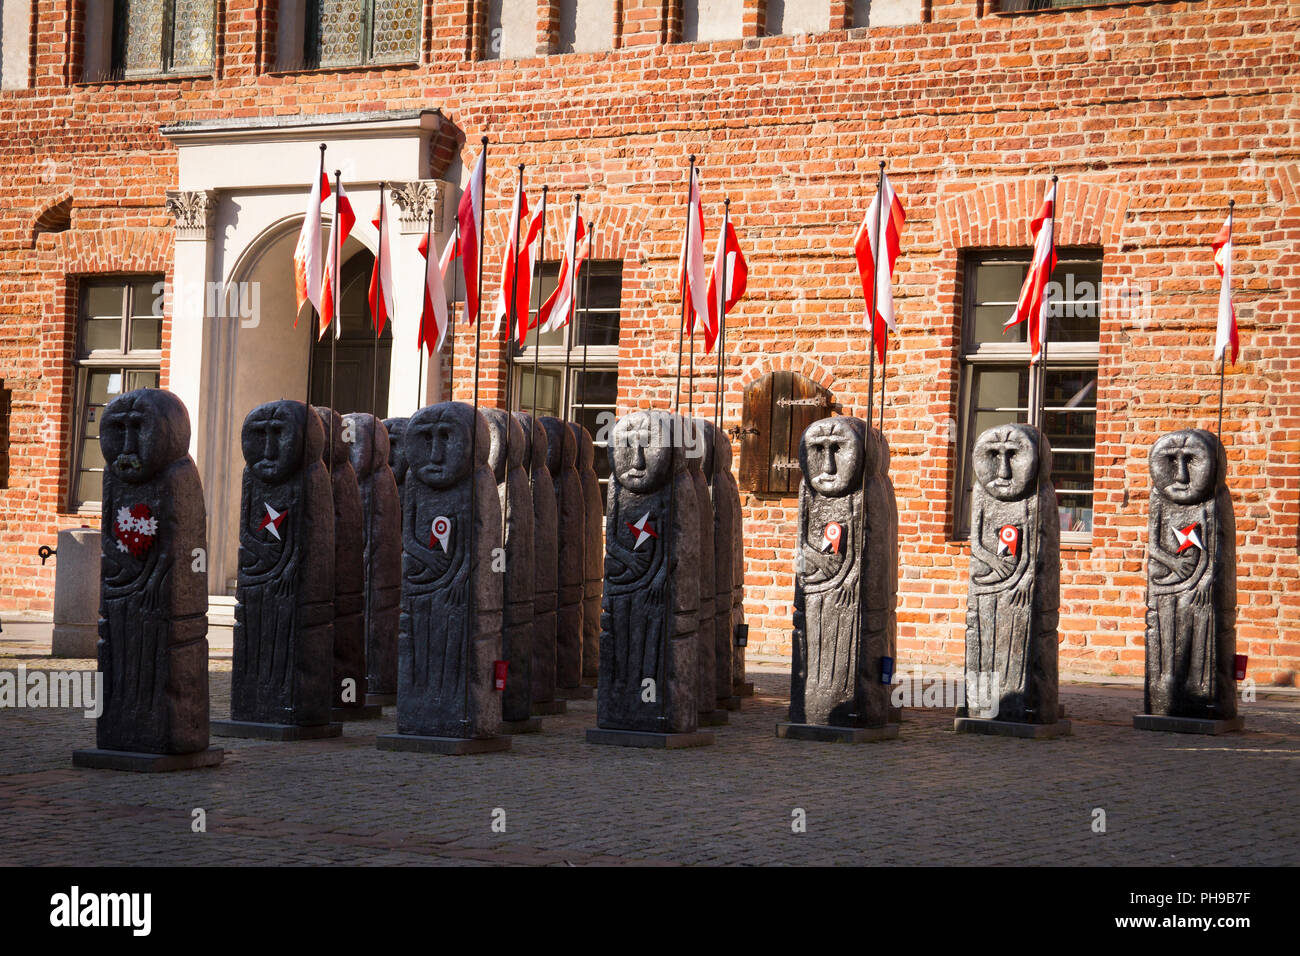 A group of sculptures imitating old pagan statues from Prussia. Olsztyn, Warmia, Poland. - Stock Image